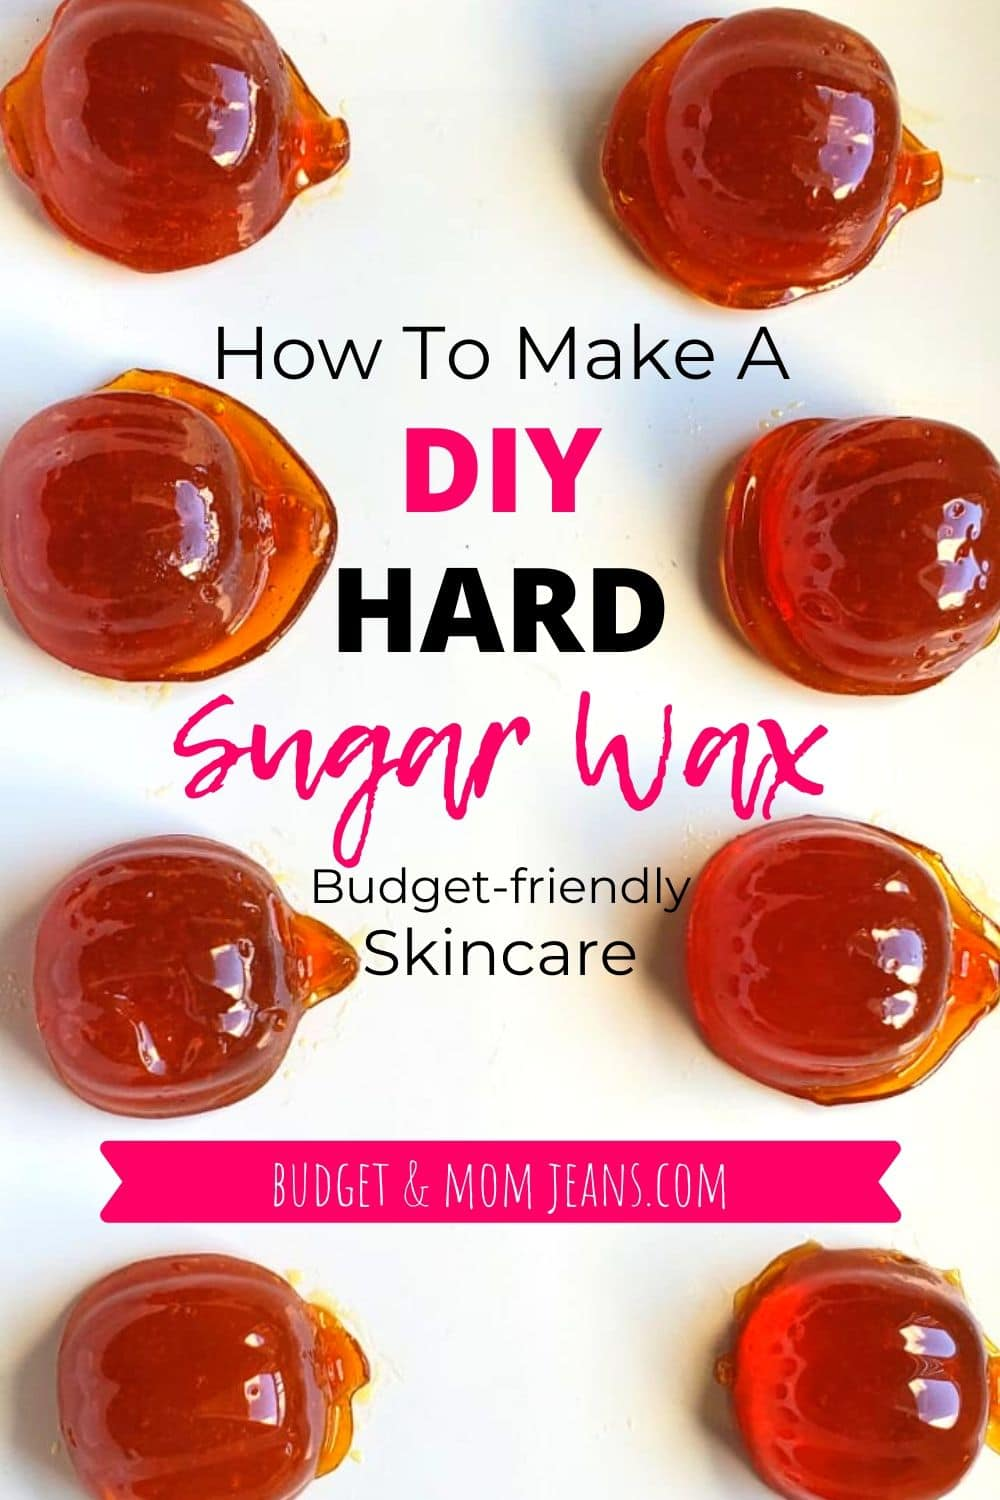 Homemade Hard Sugar Wax For Hair Removal | Pumpkin-Shaped